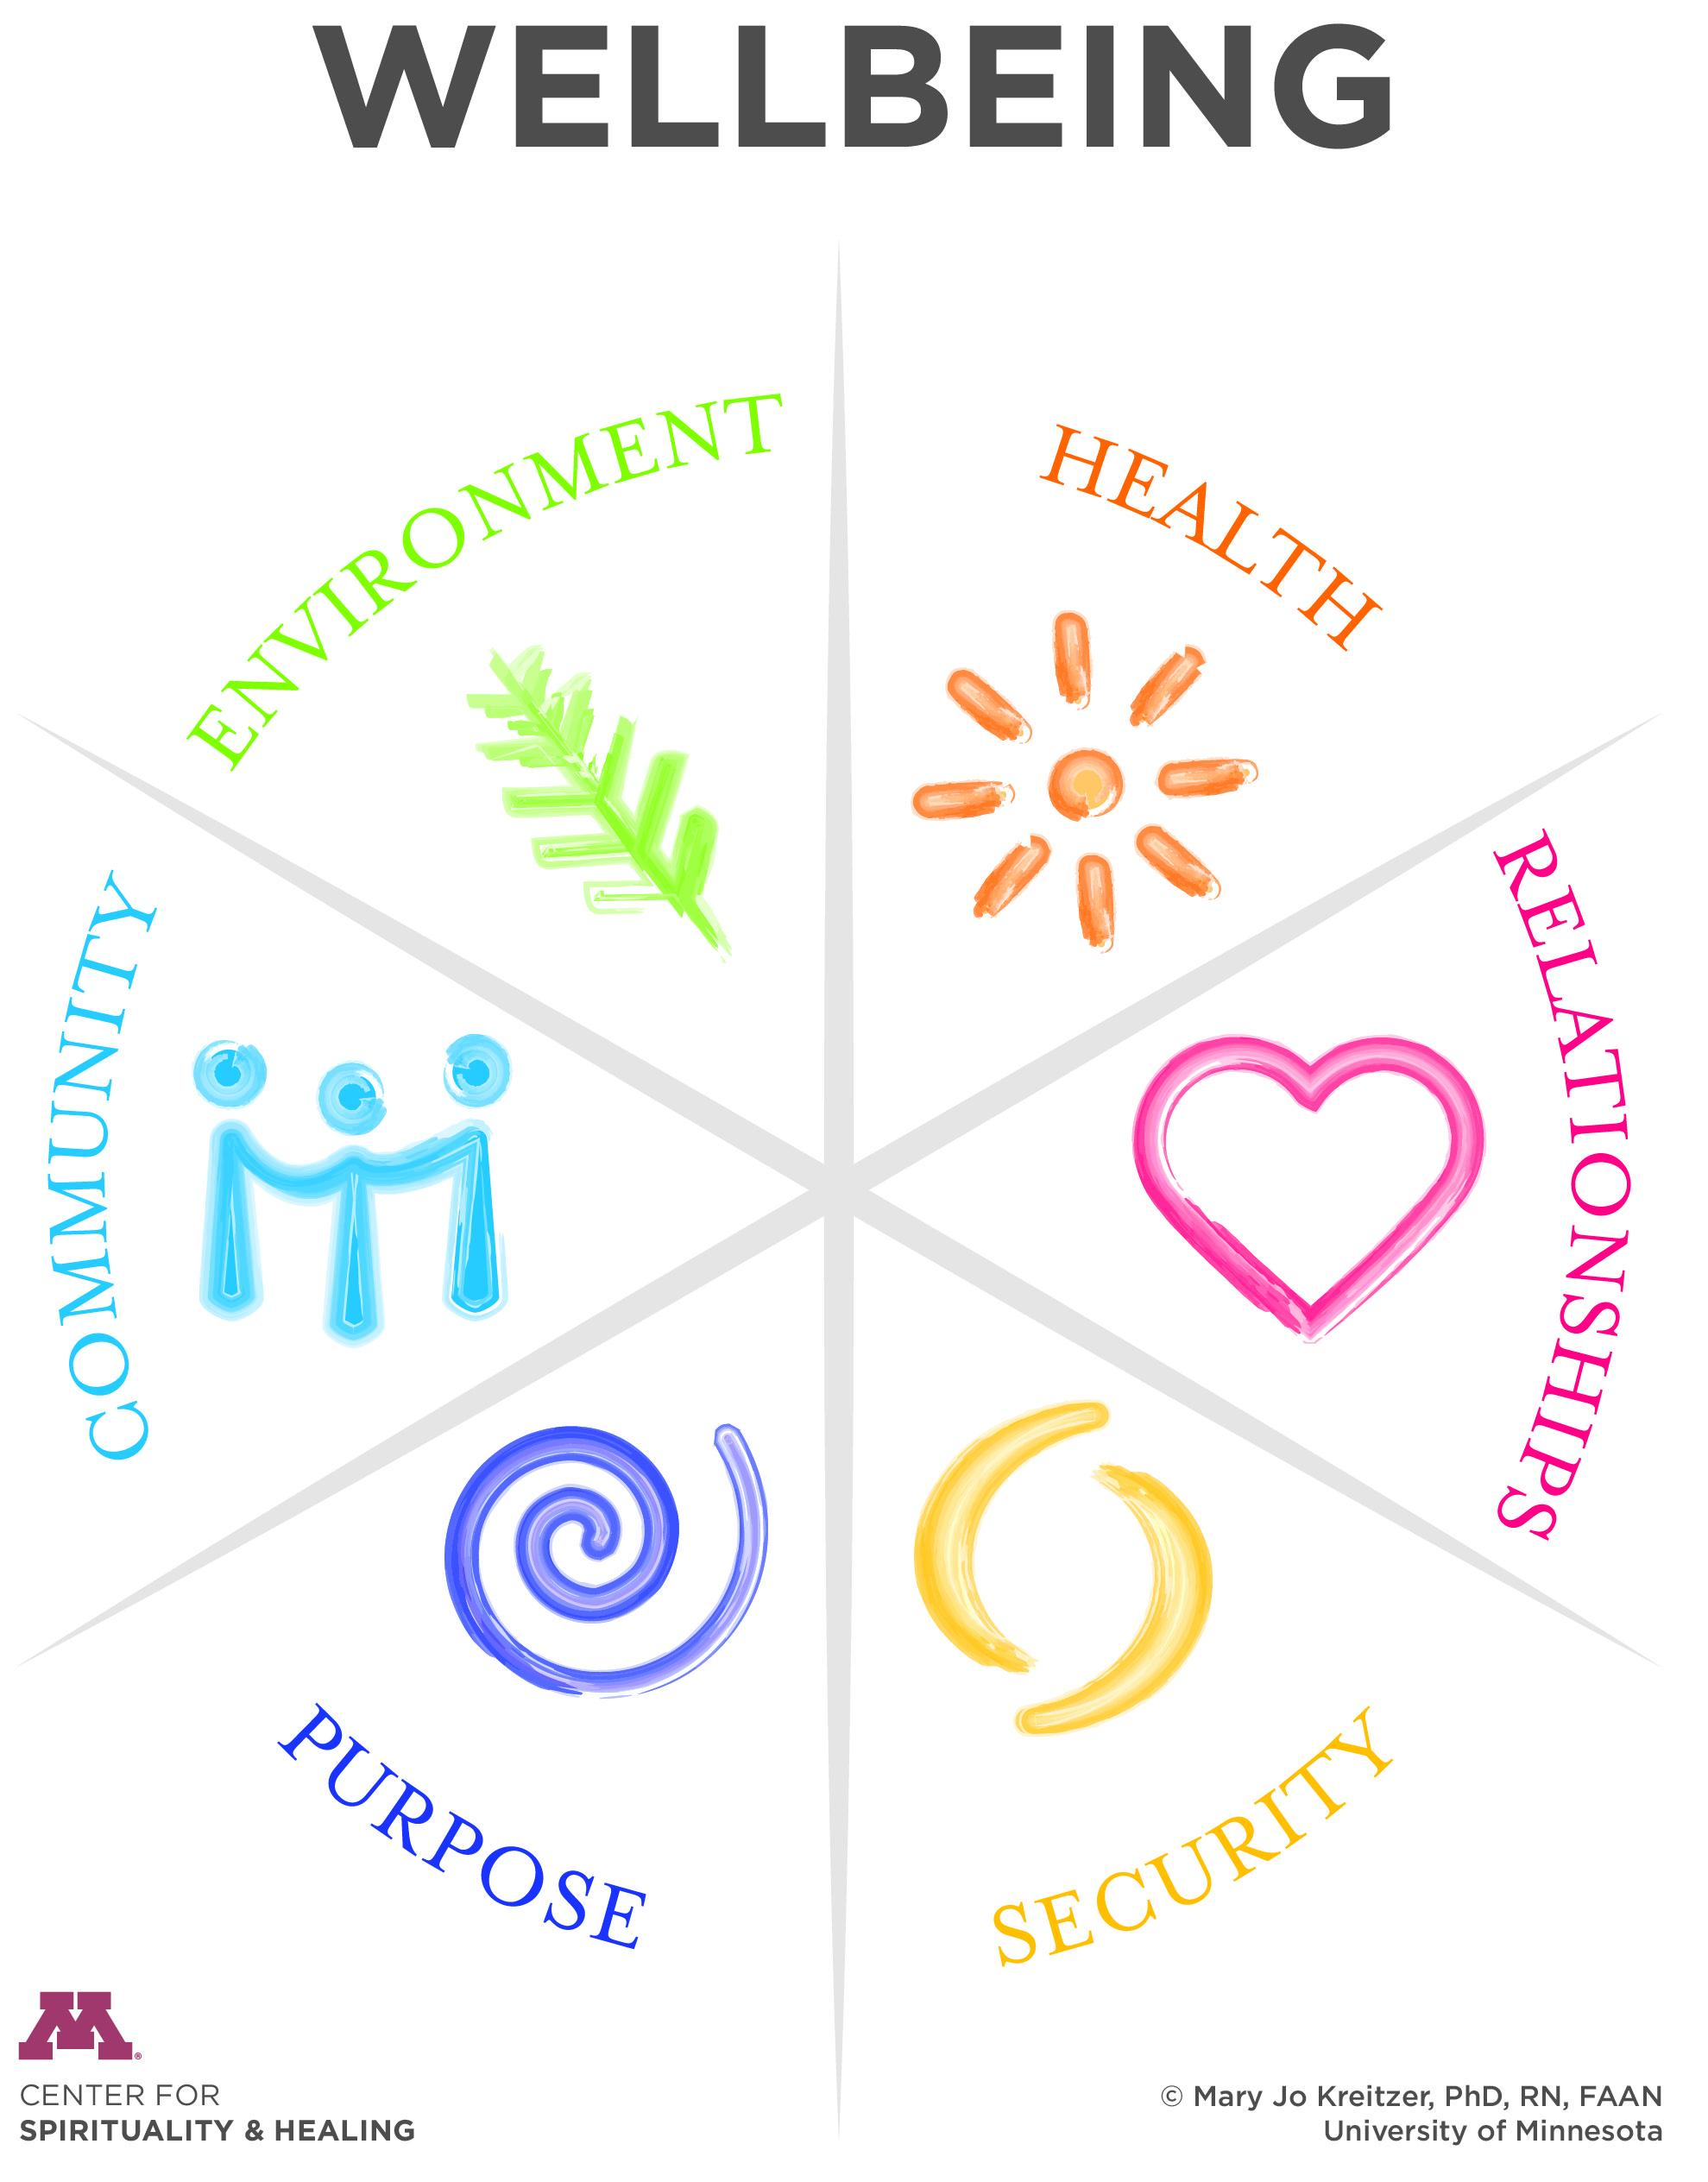 Wellbeing Model has six parts: Health, Relationships, Community, Environment, Security, and Purpose. From the U of M Center for Spirituality & Healing, Dr. Mary Jo Kreitzer